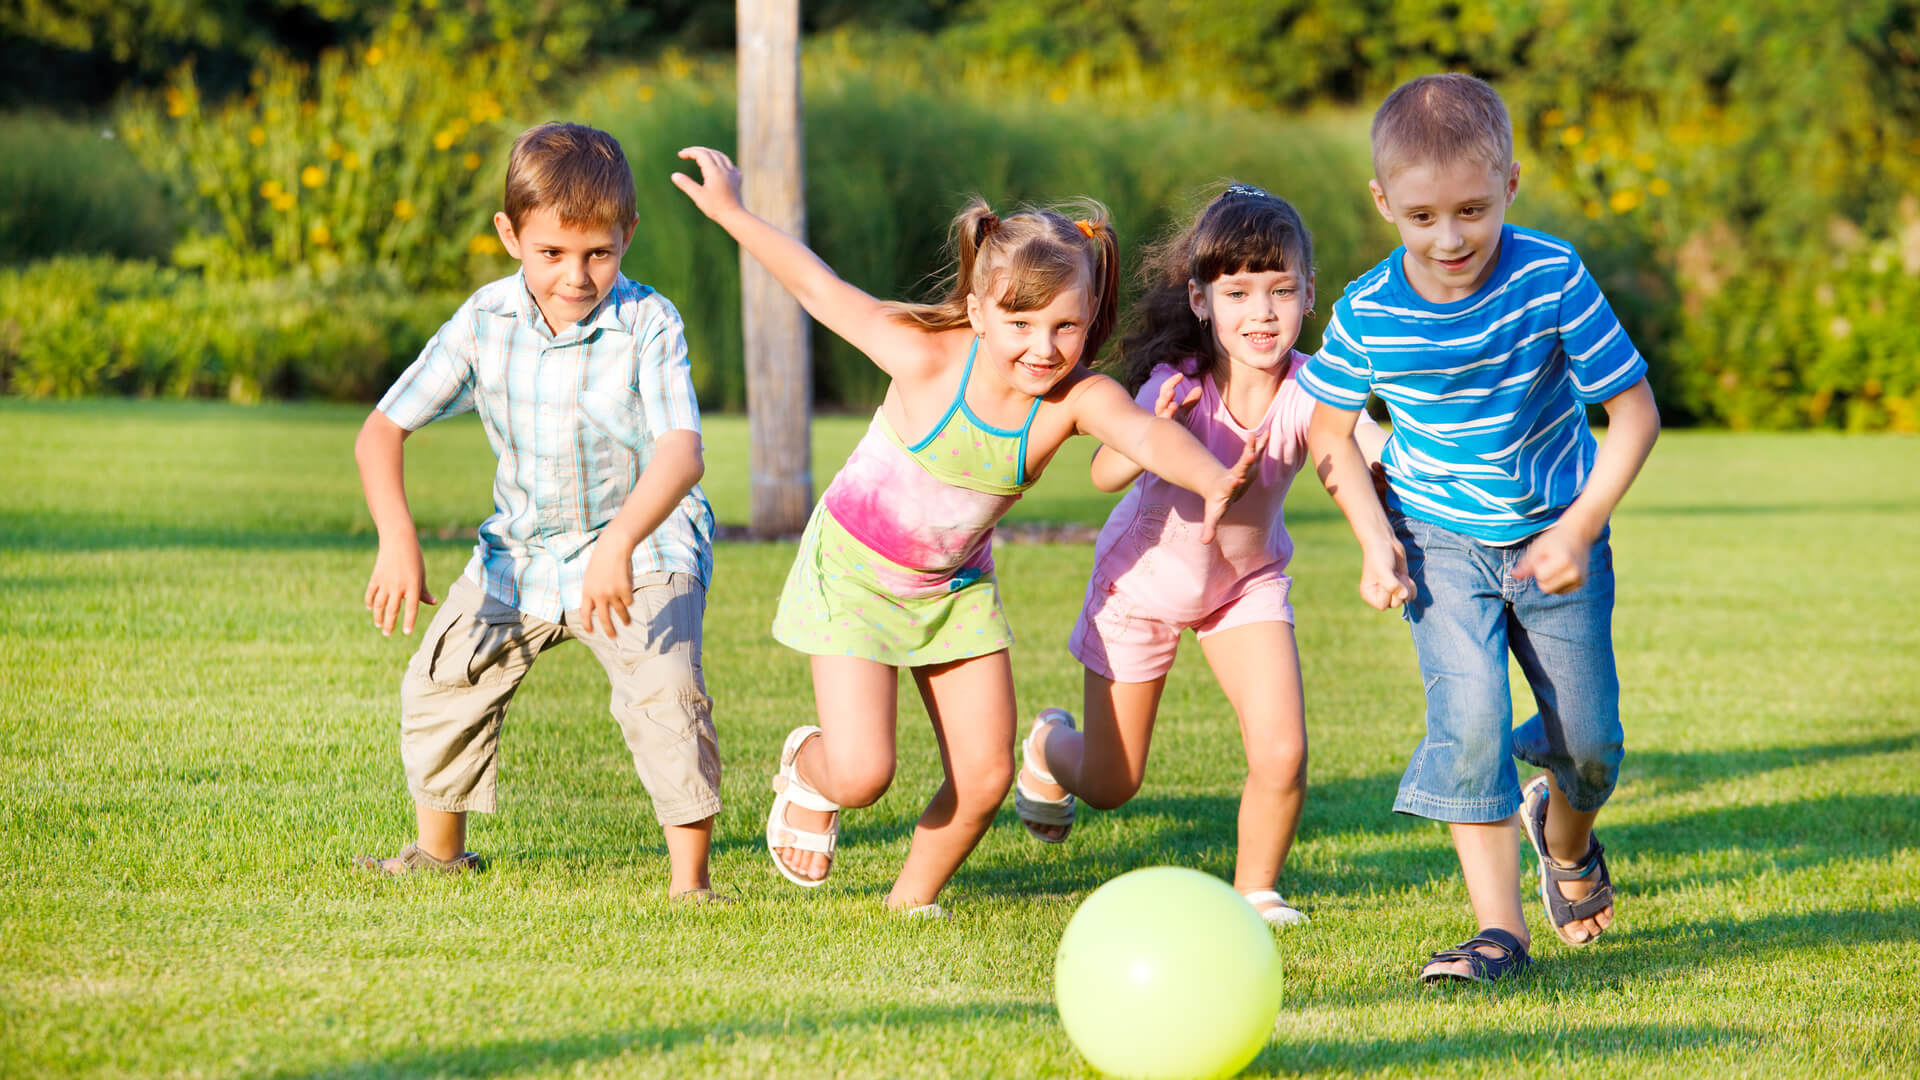 Importance of physical activity for kids